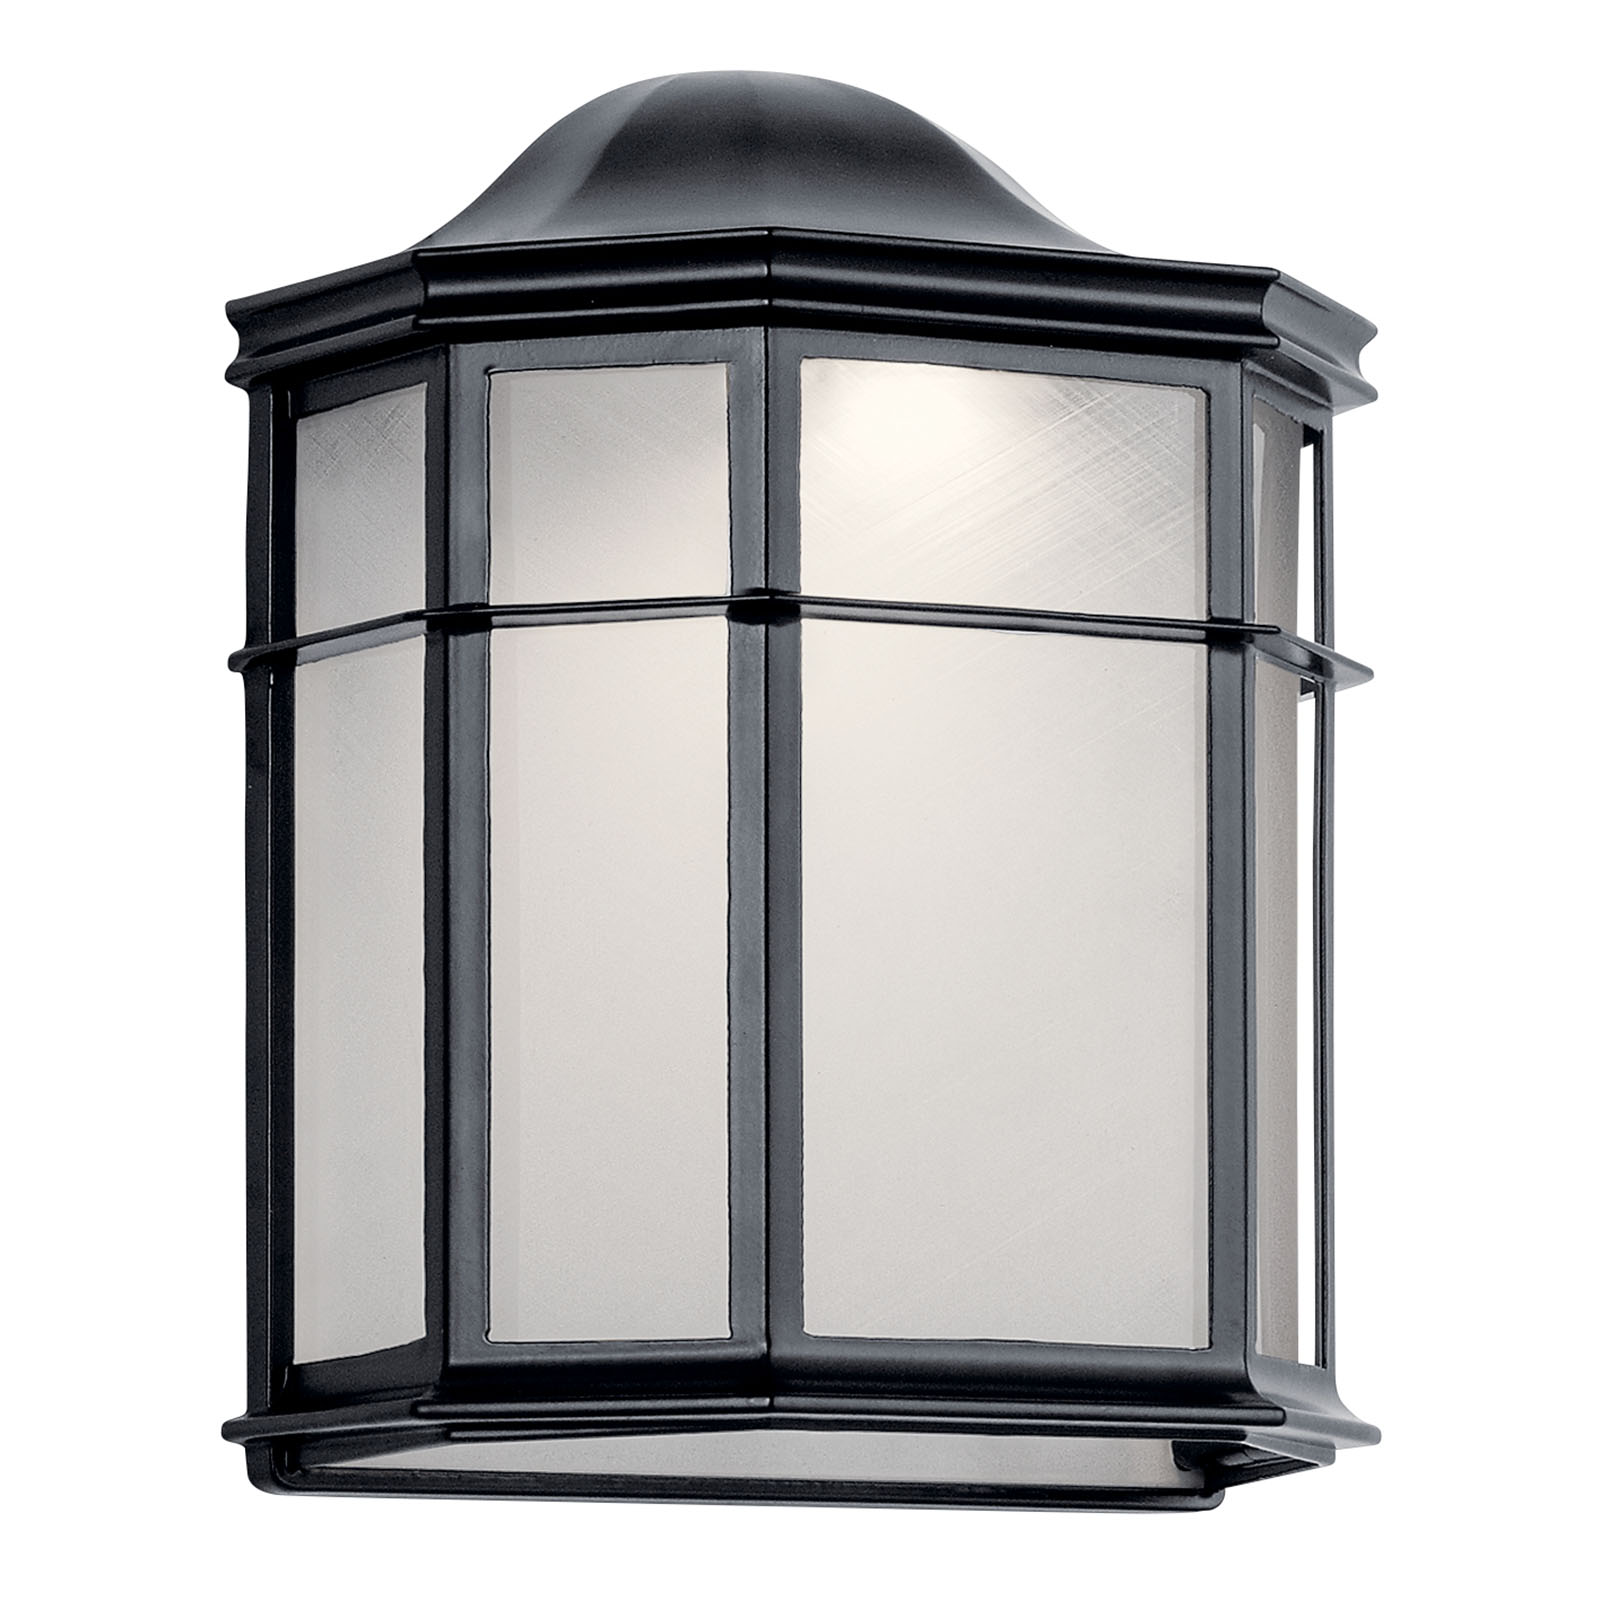 Outdoor Wall Sconce LED